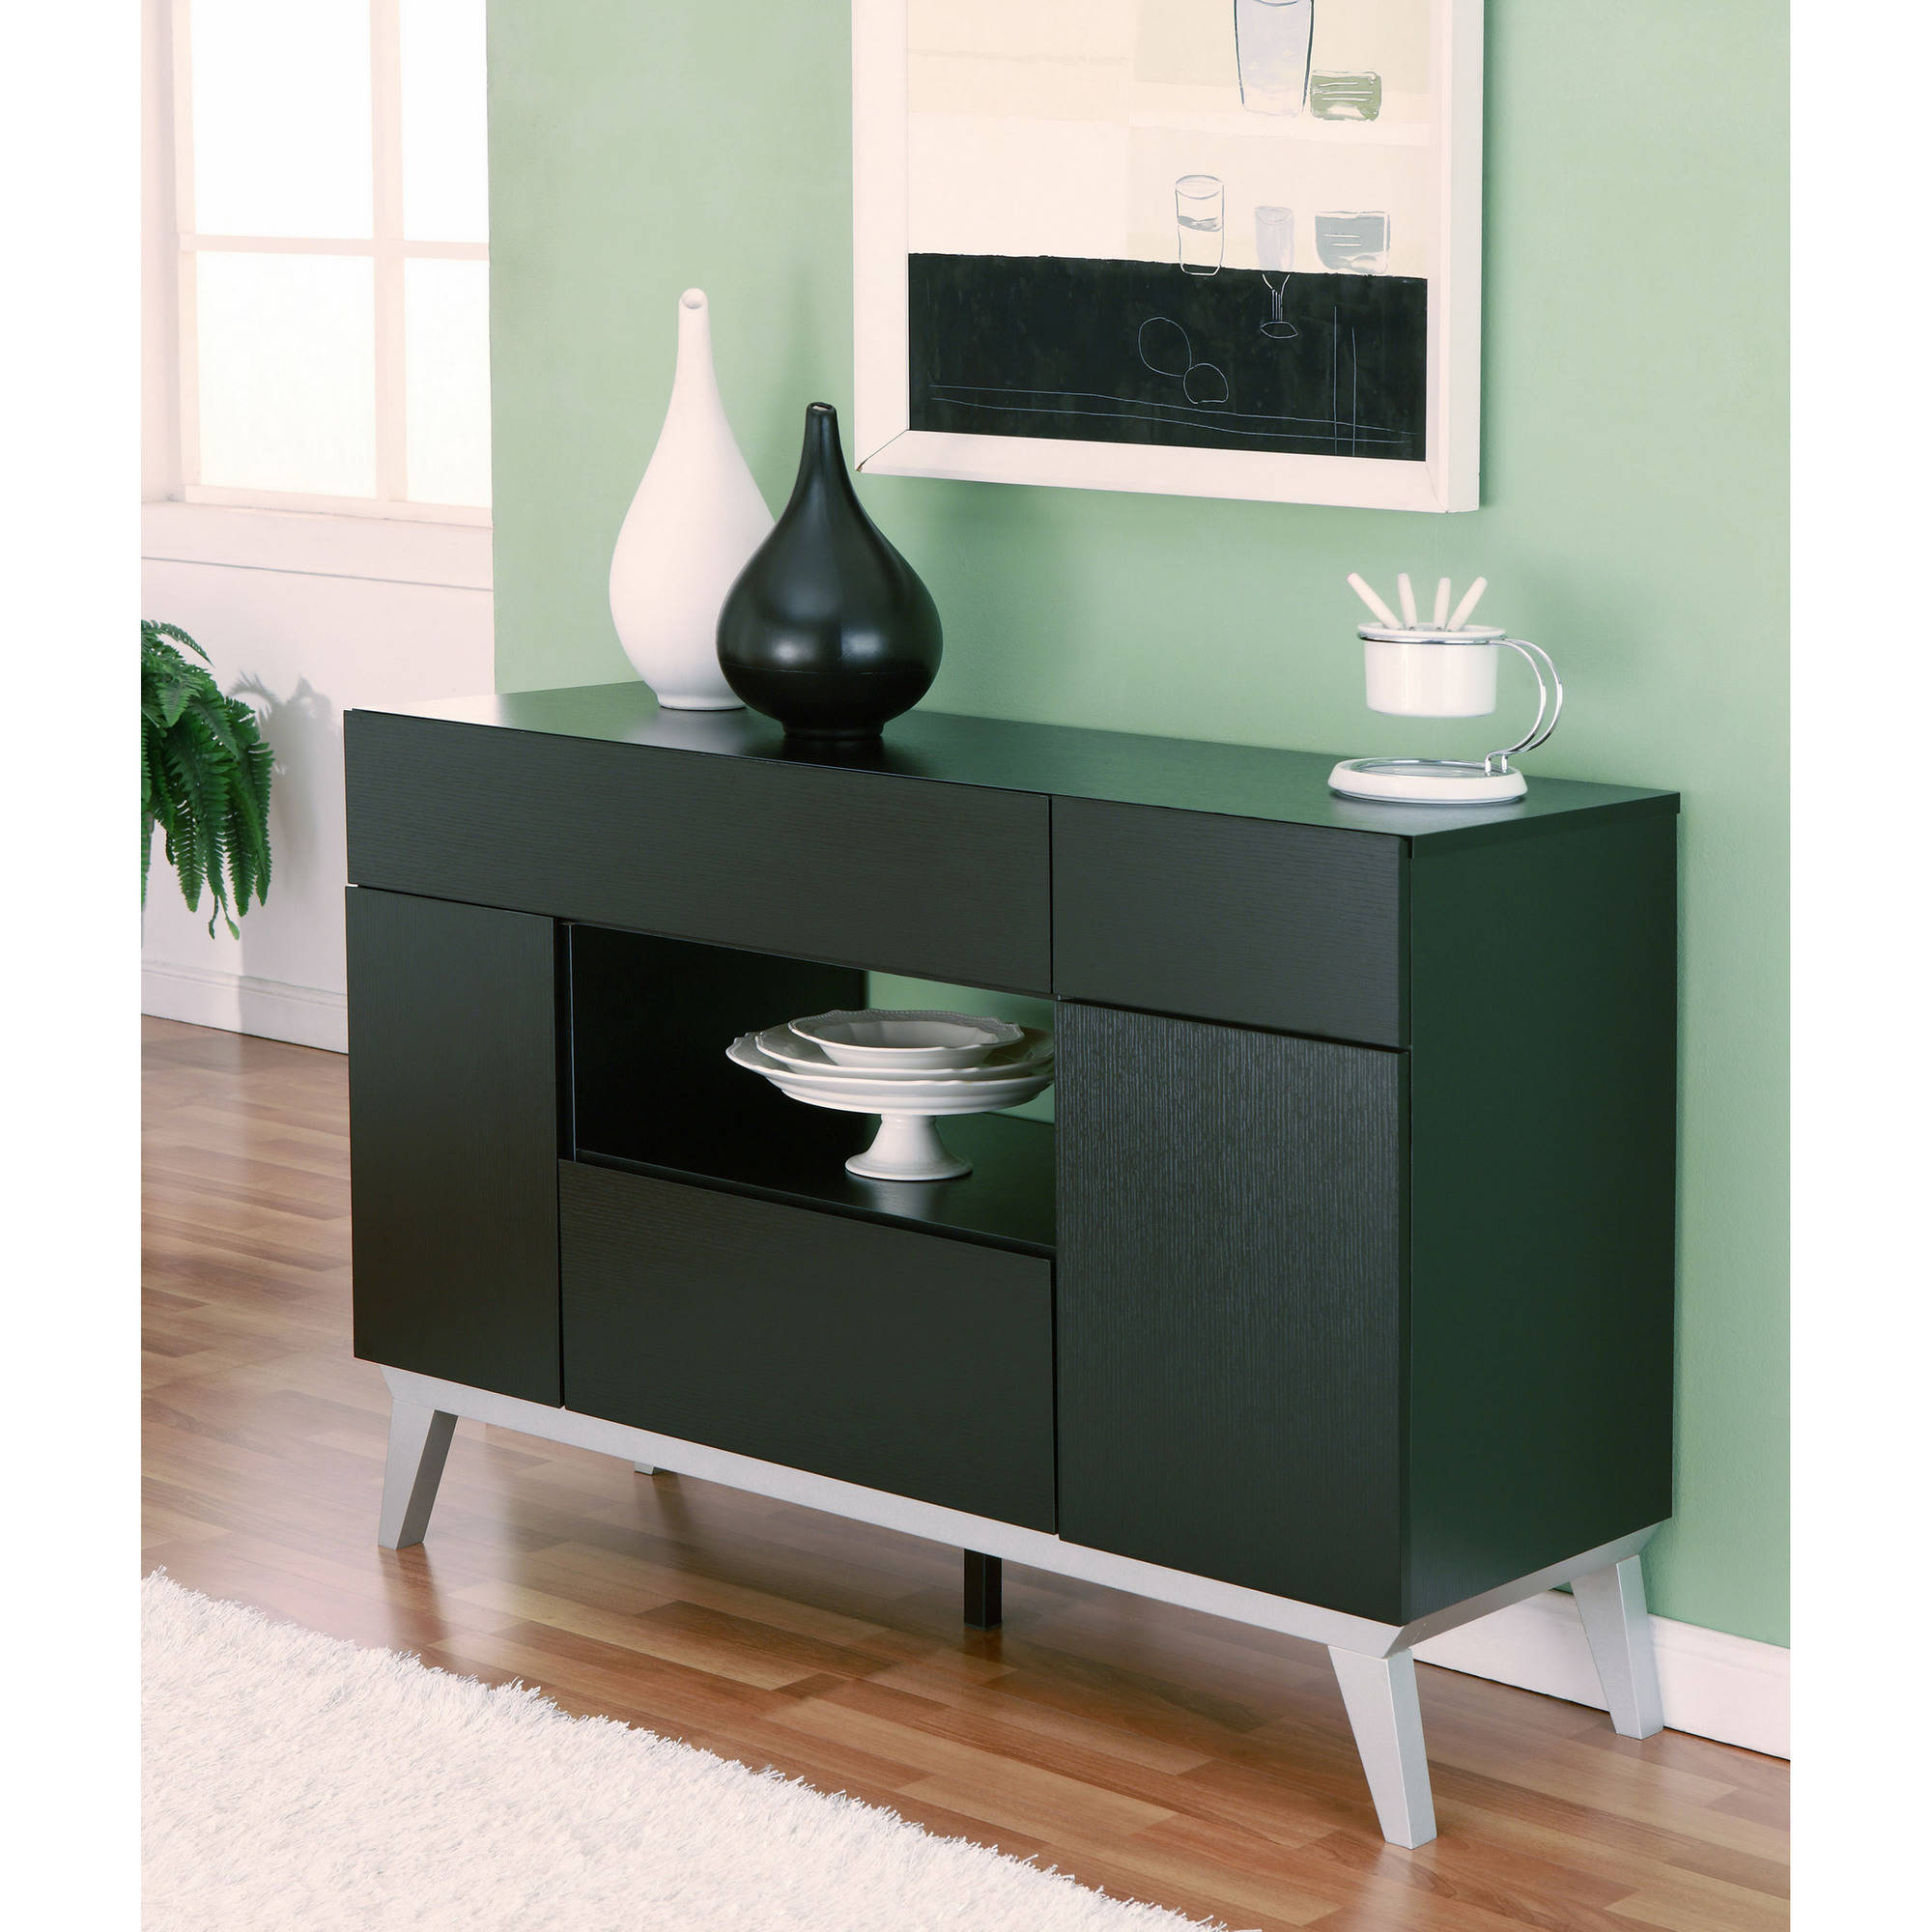 Furniture of America Feran Modern Multi-Storage Buffet Table, Black by Furniture of America